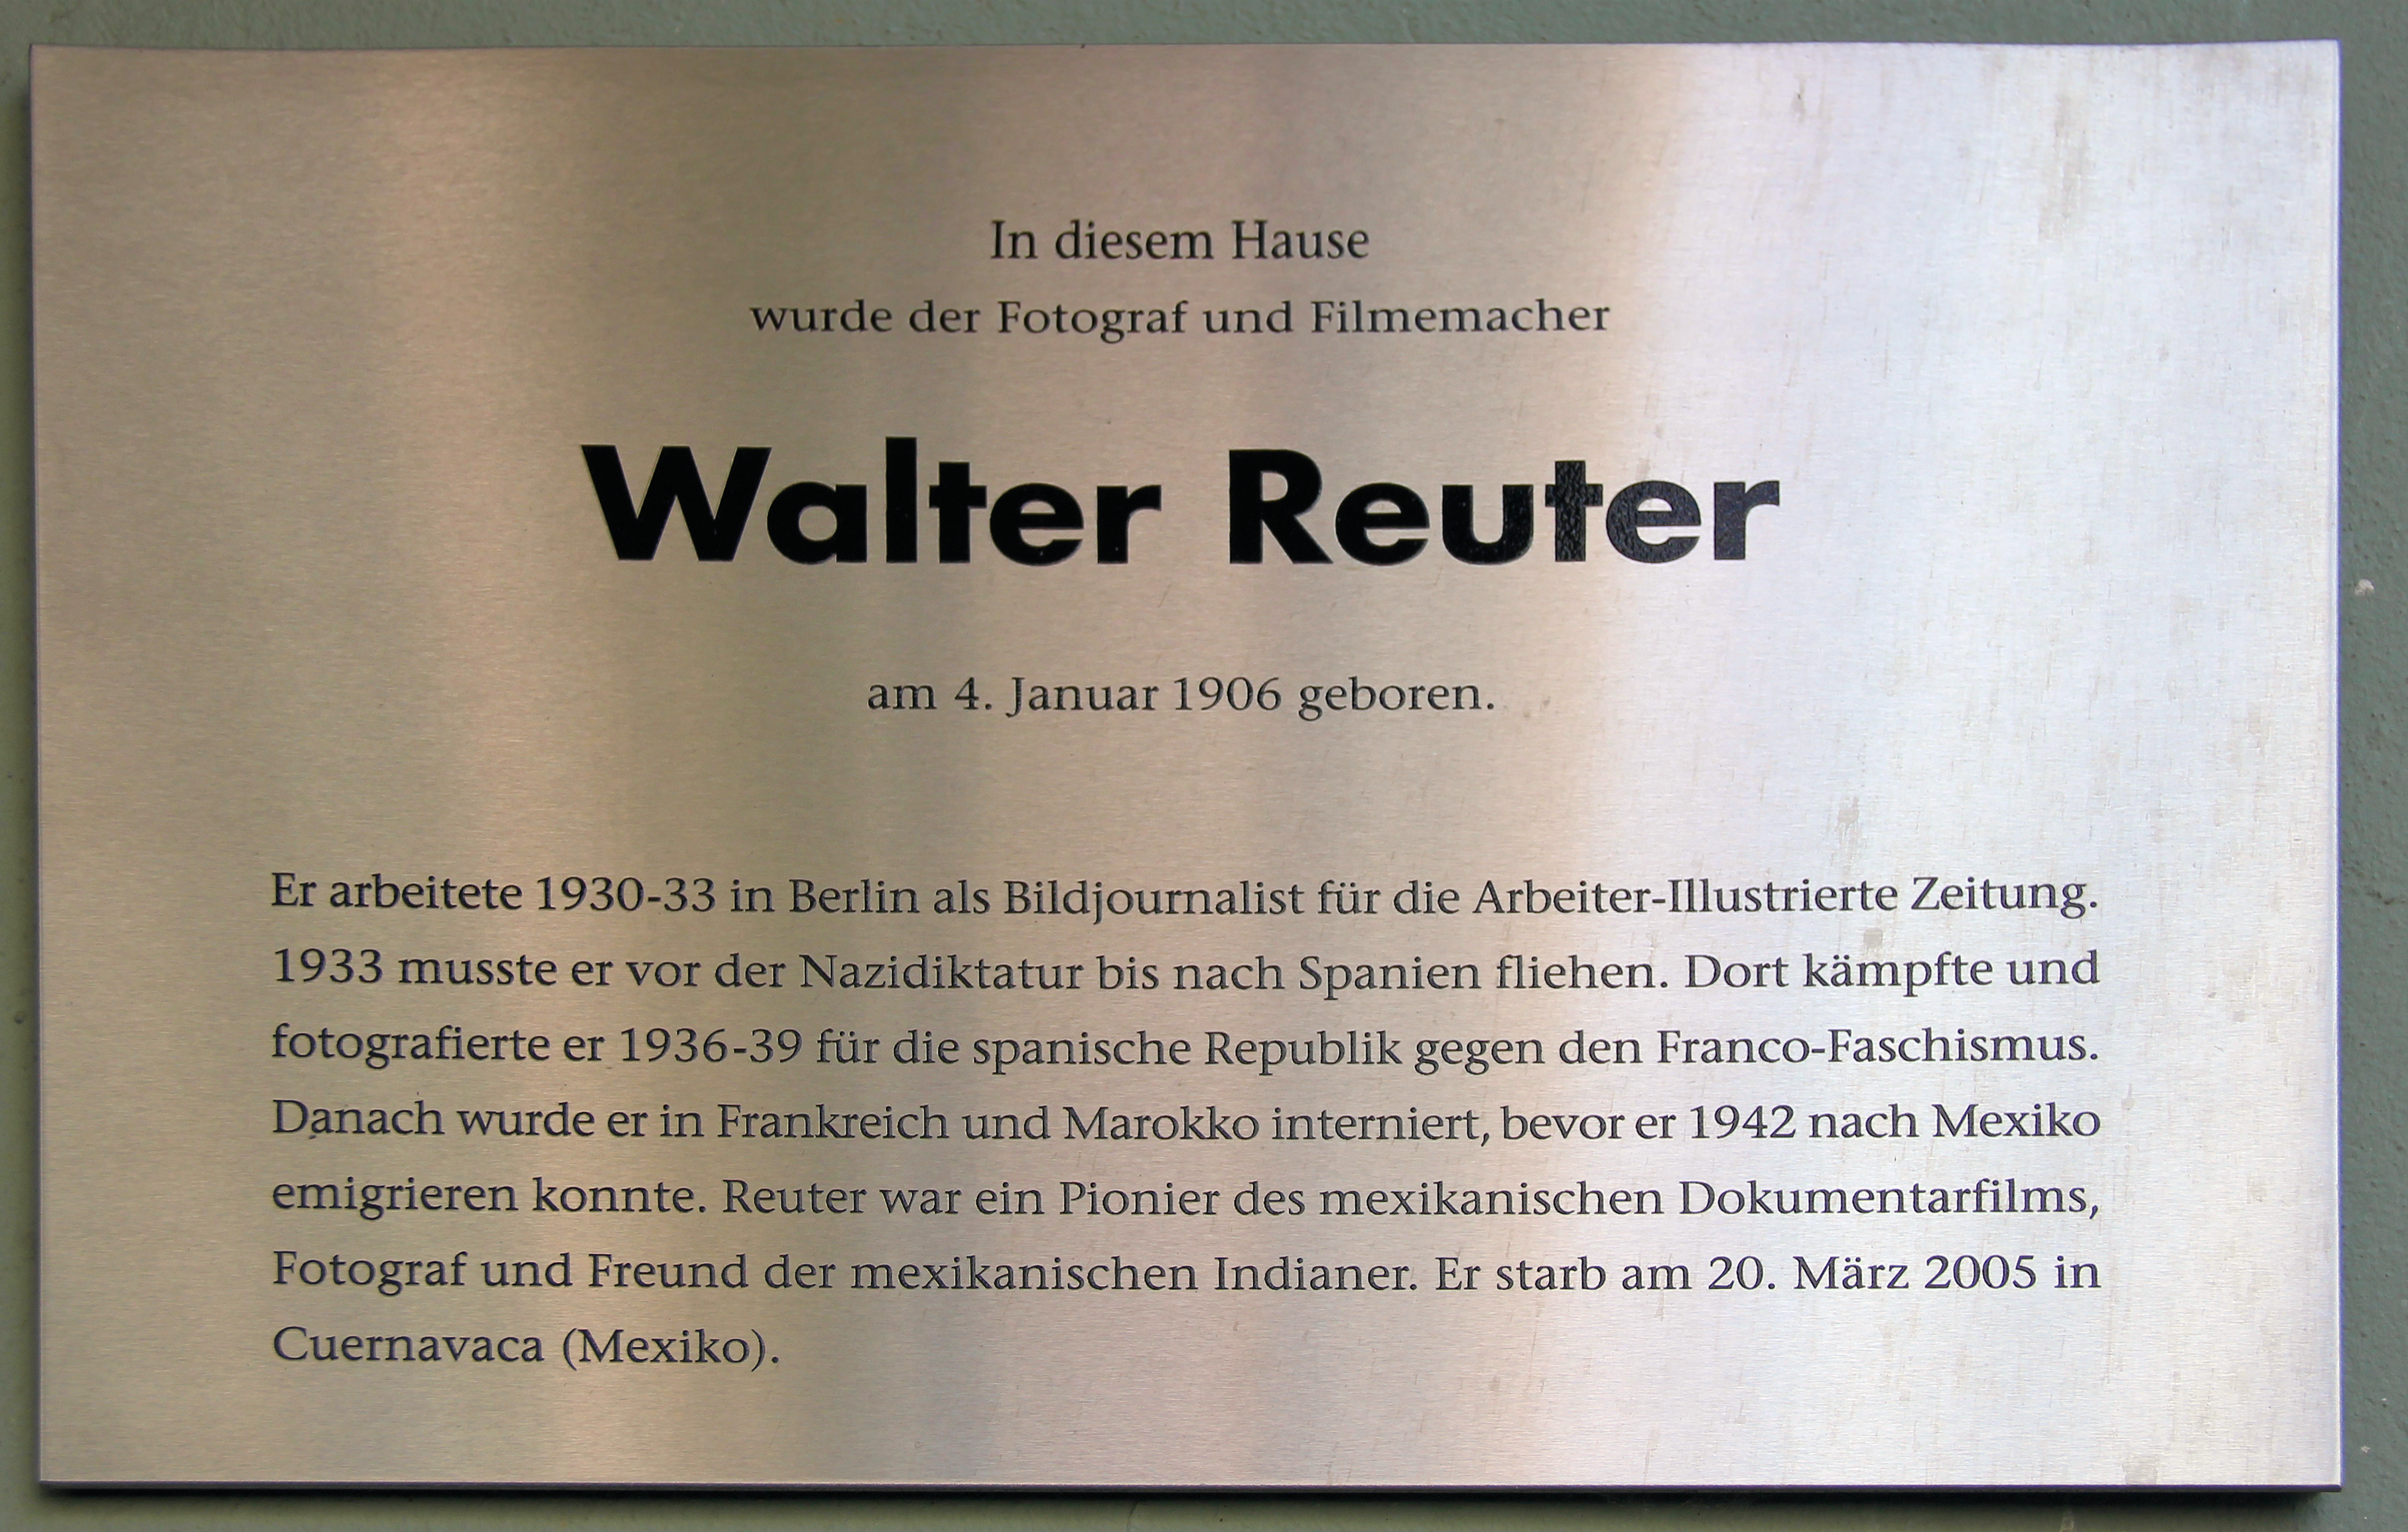 Image of Walter Reuter from Wikidata